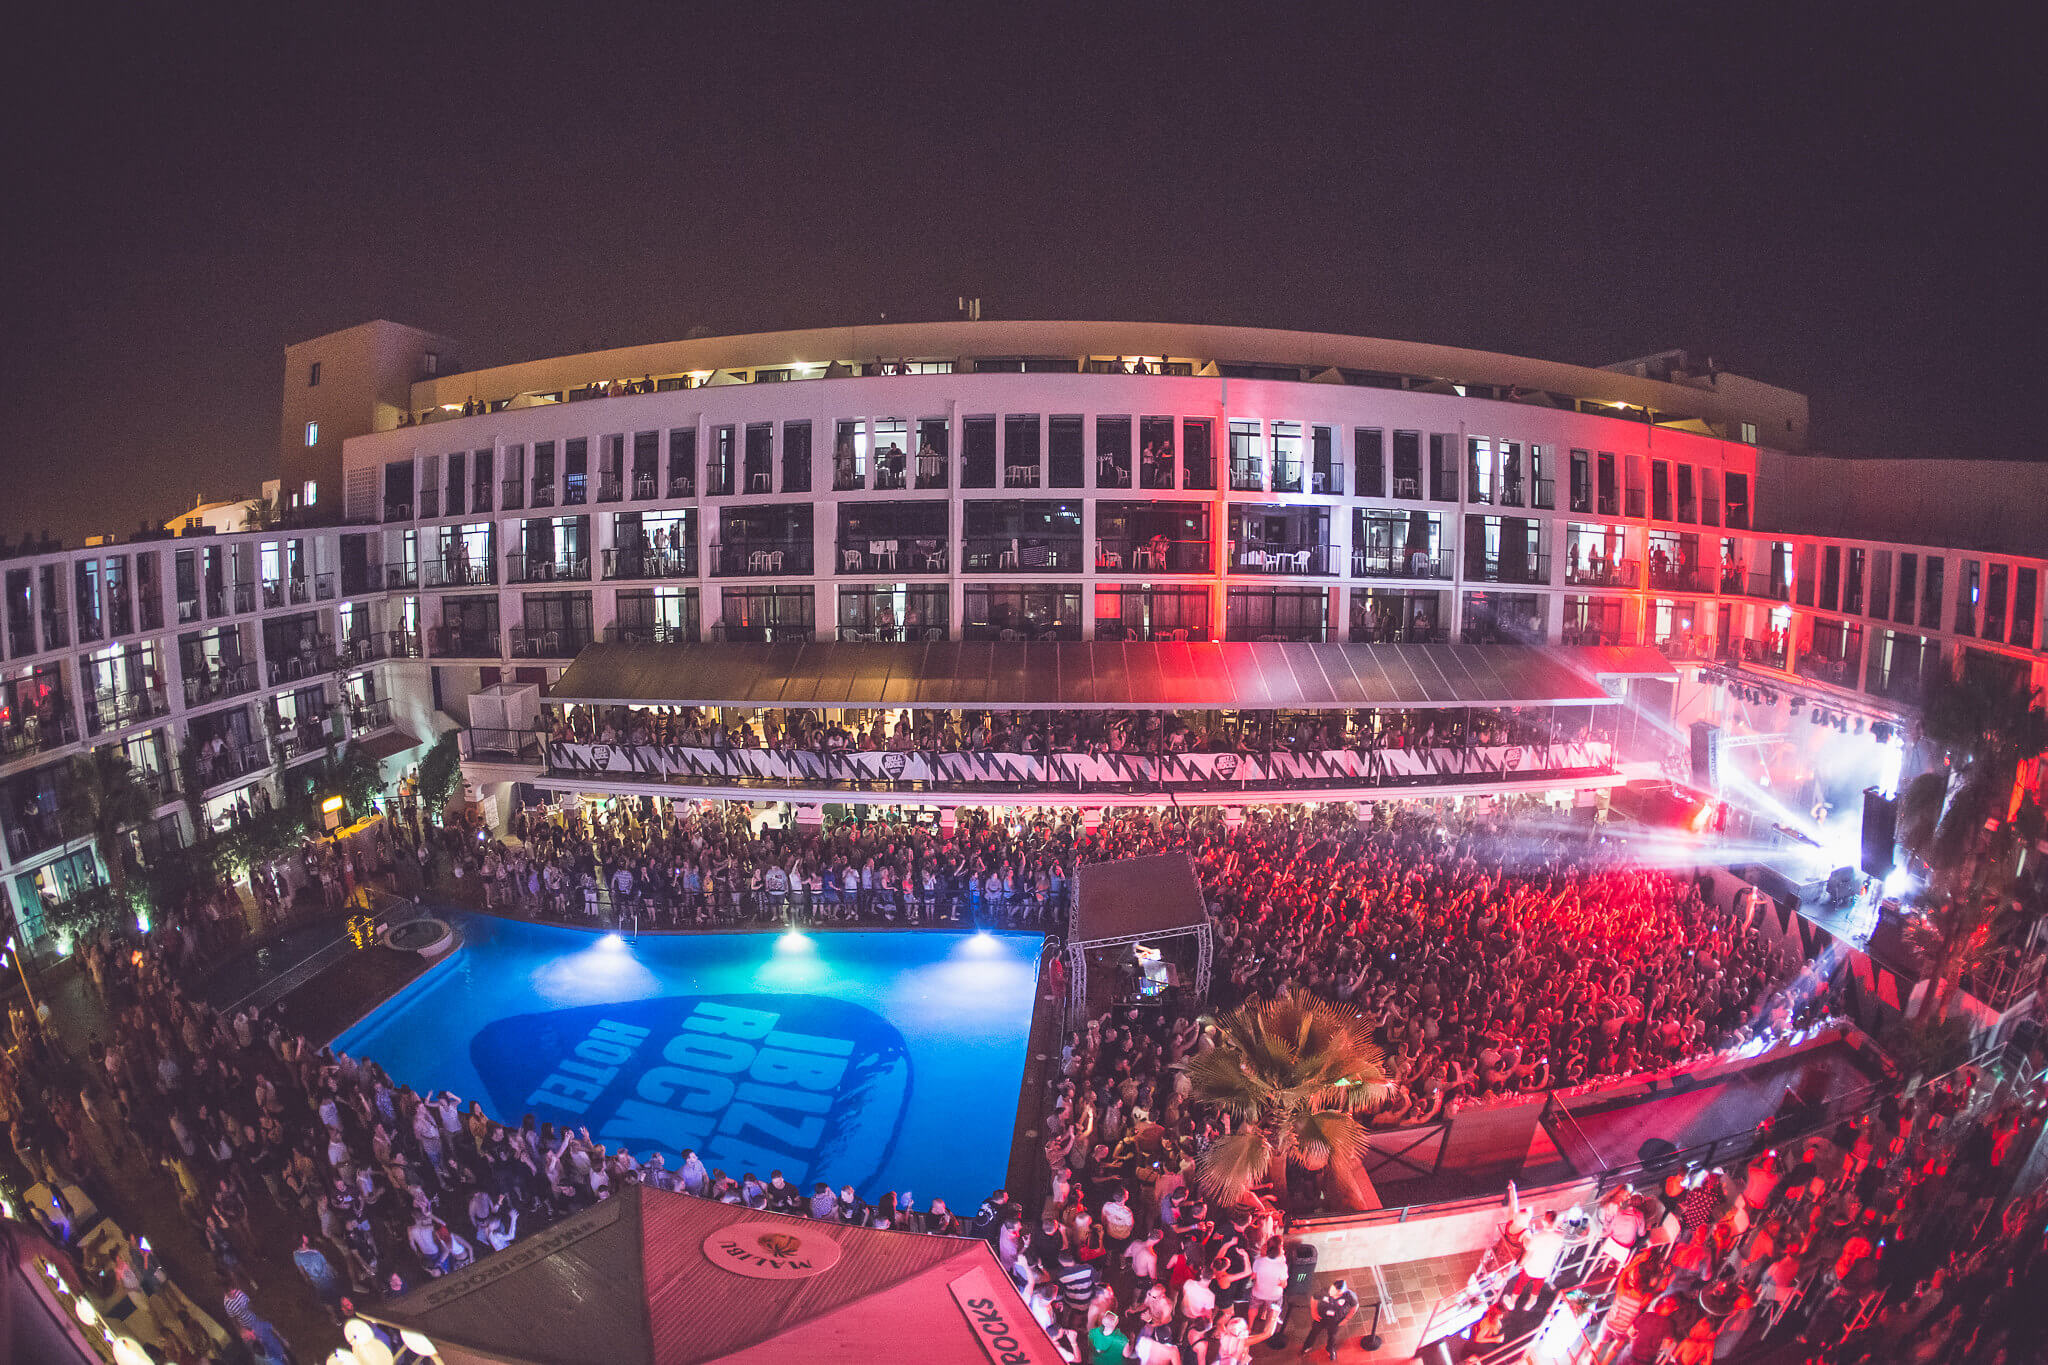 https://www.white-ibiza.com/wp-content/uploads/2020/04/ibiza-rocks-hotel-2020-02.jpg